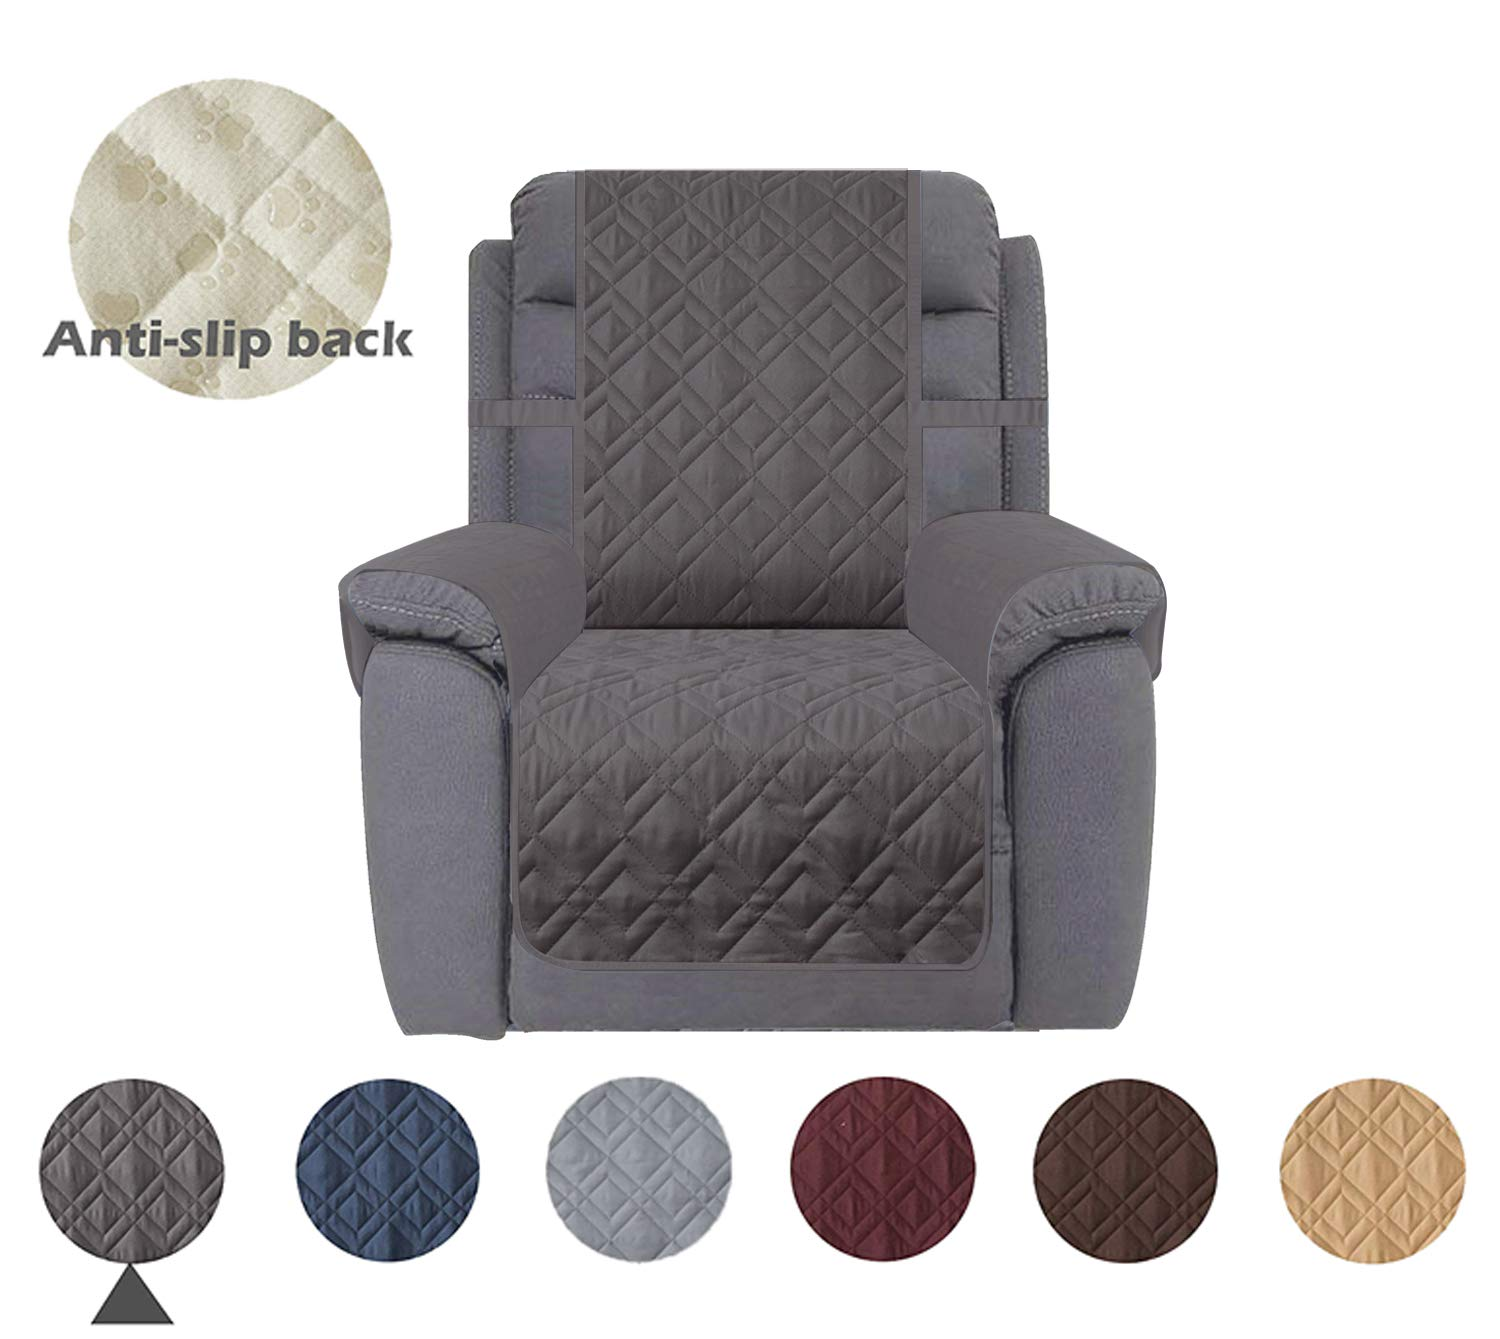 Ameritex Recliner Chair Cover with Anti-Skip Dog Paw Print 100% Waterproof Keep Your Couch Stain, Dirt & Scratches-Free (Pattern1:Dark Grey, Recliner)